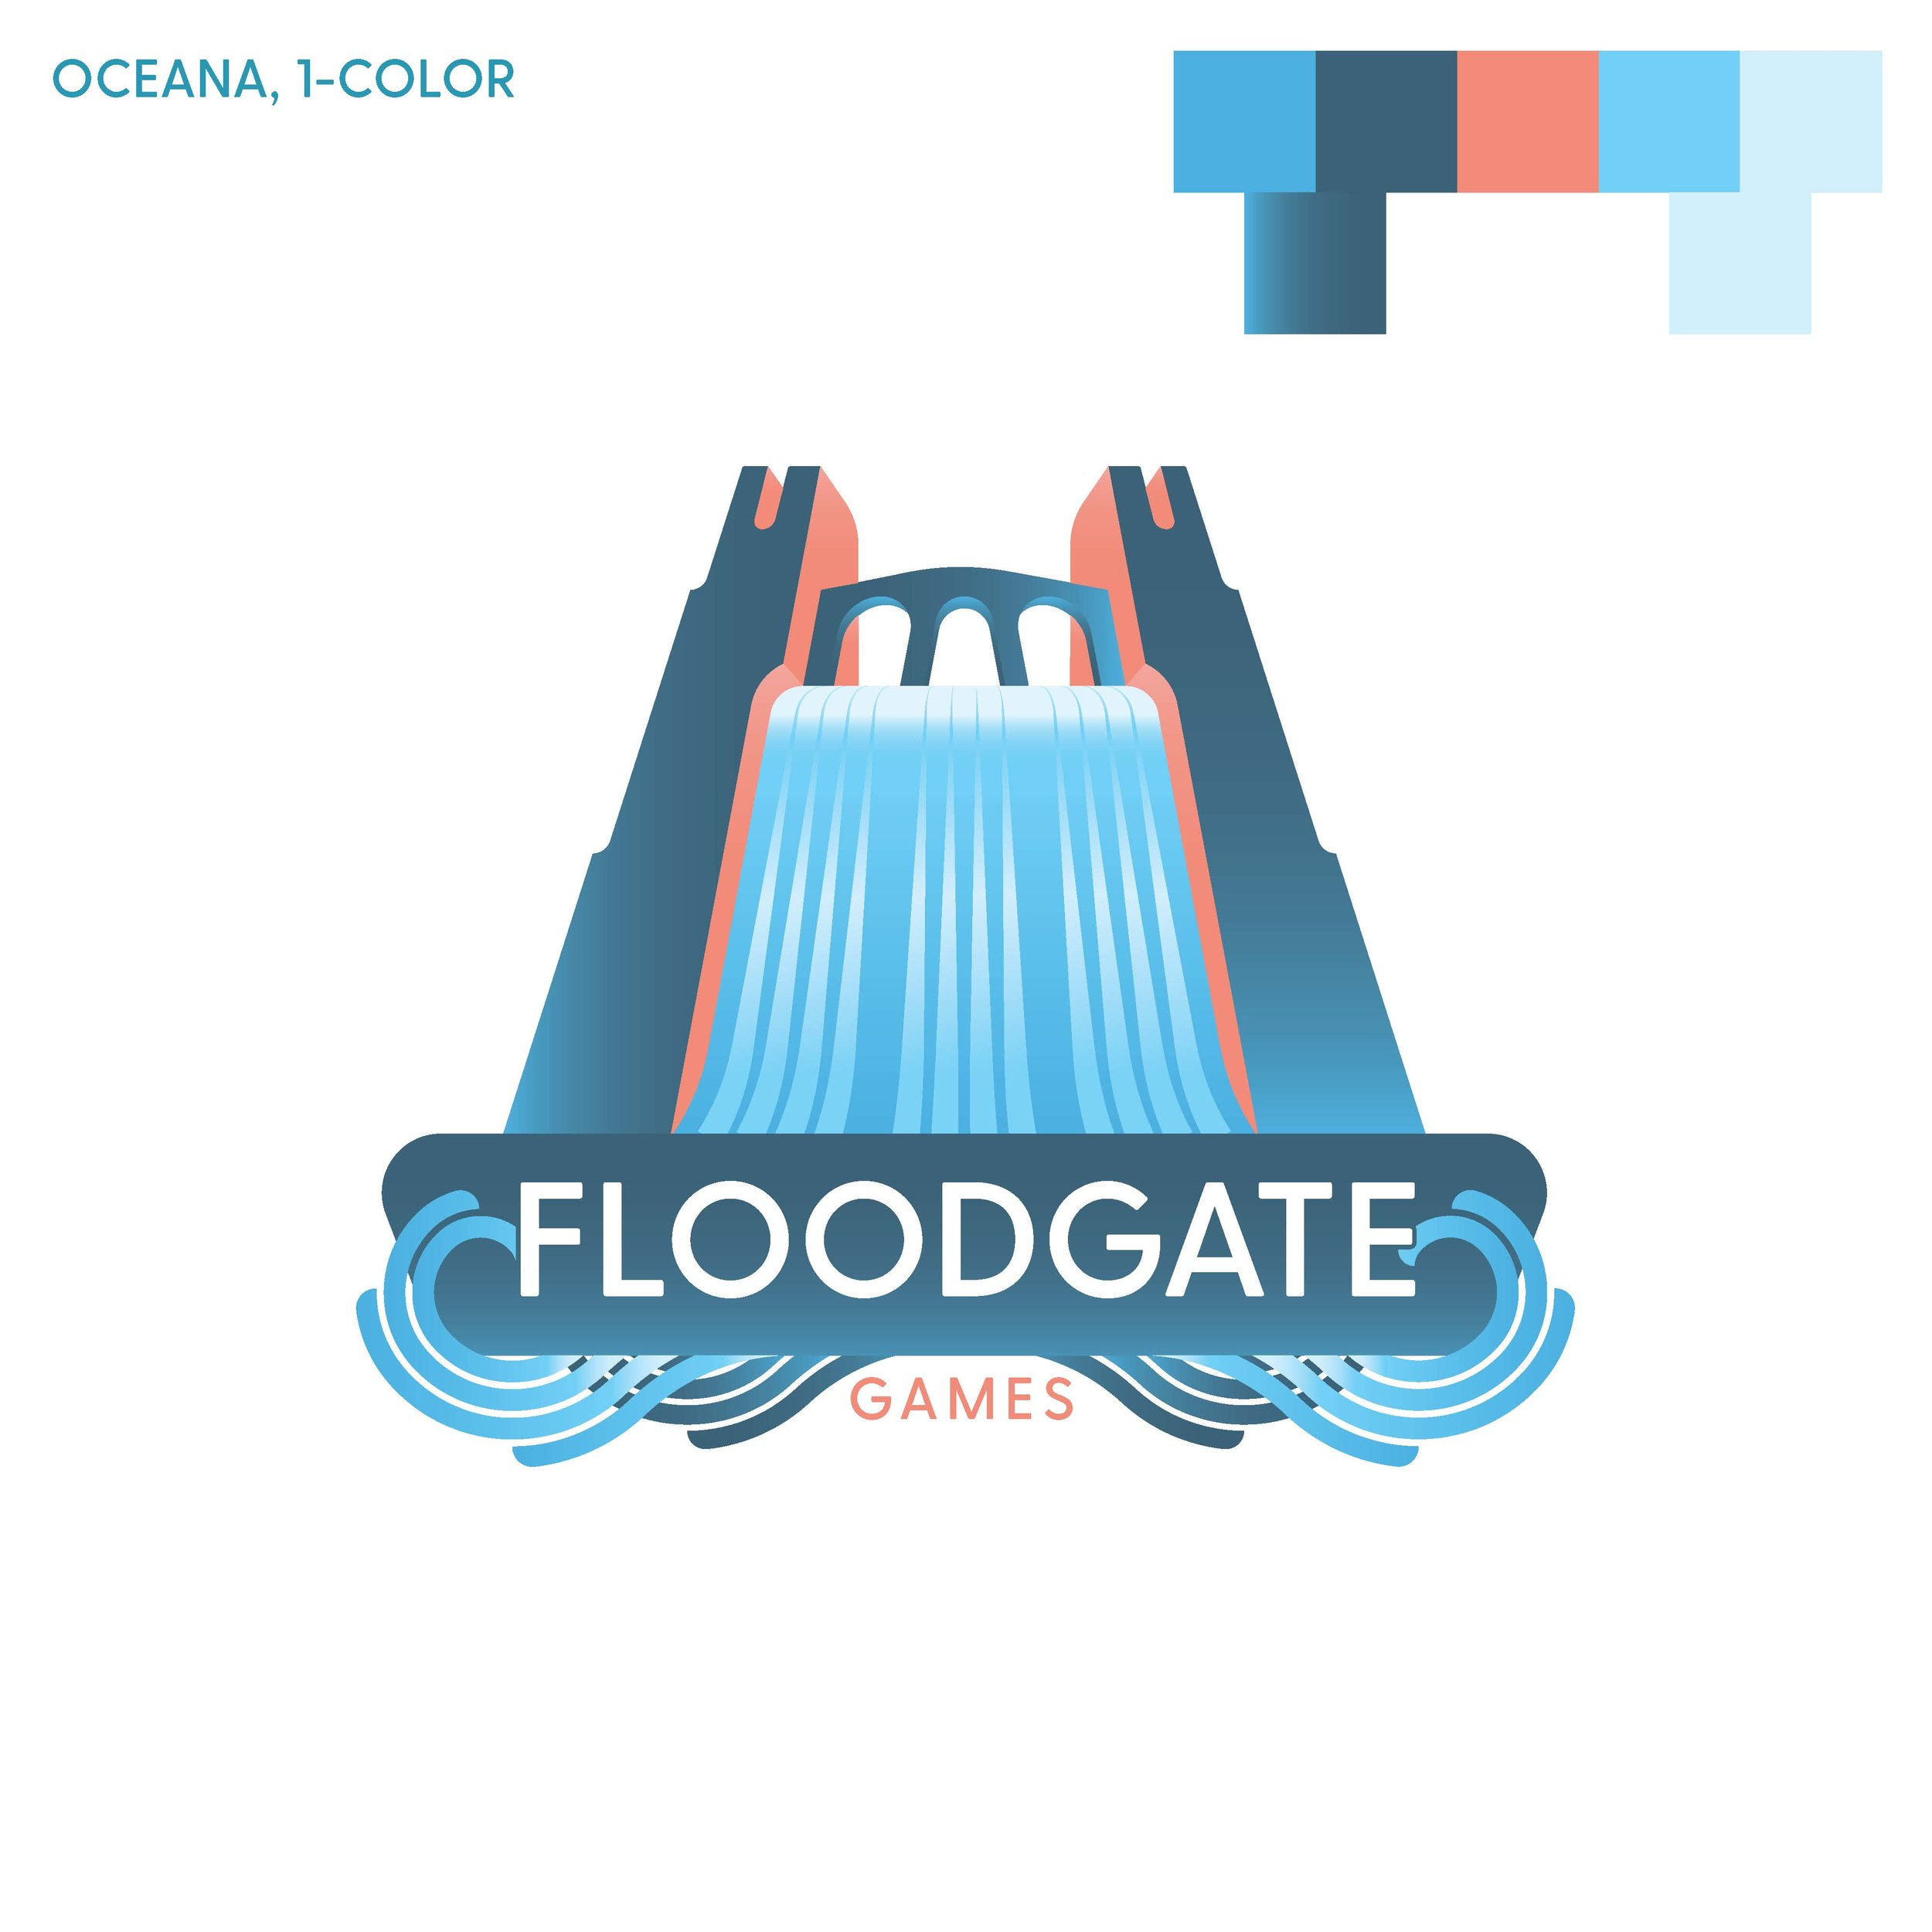 Floodgate_Logo2_V6_COLORS_Page_10.jpg